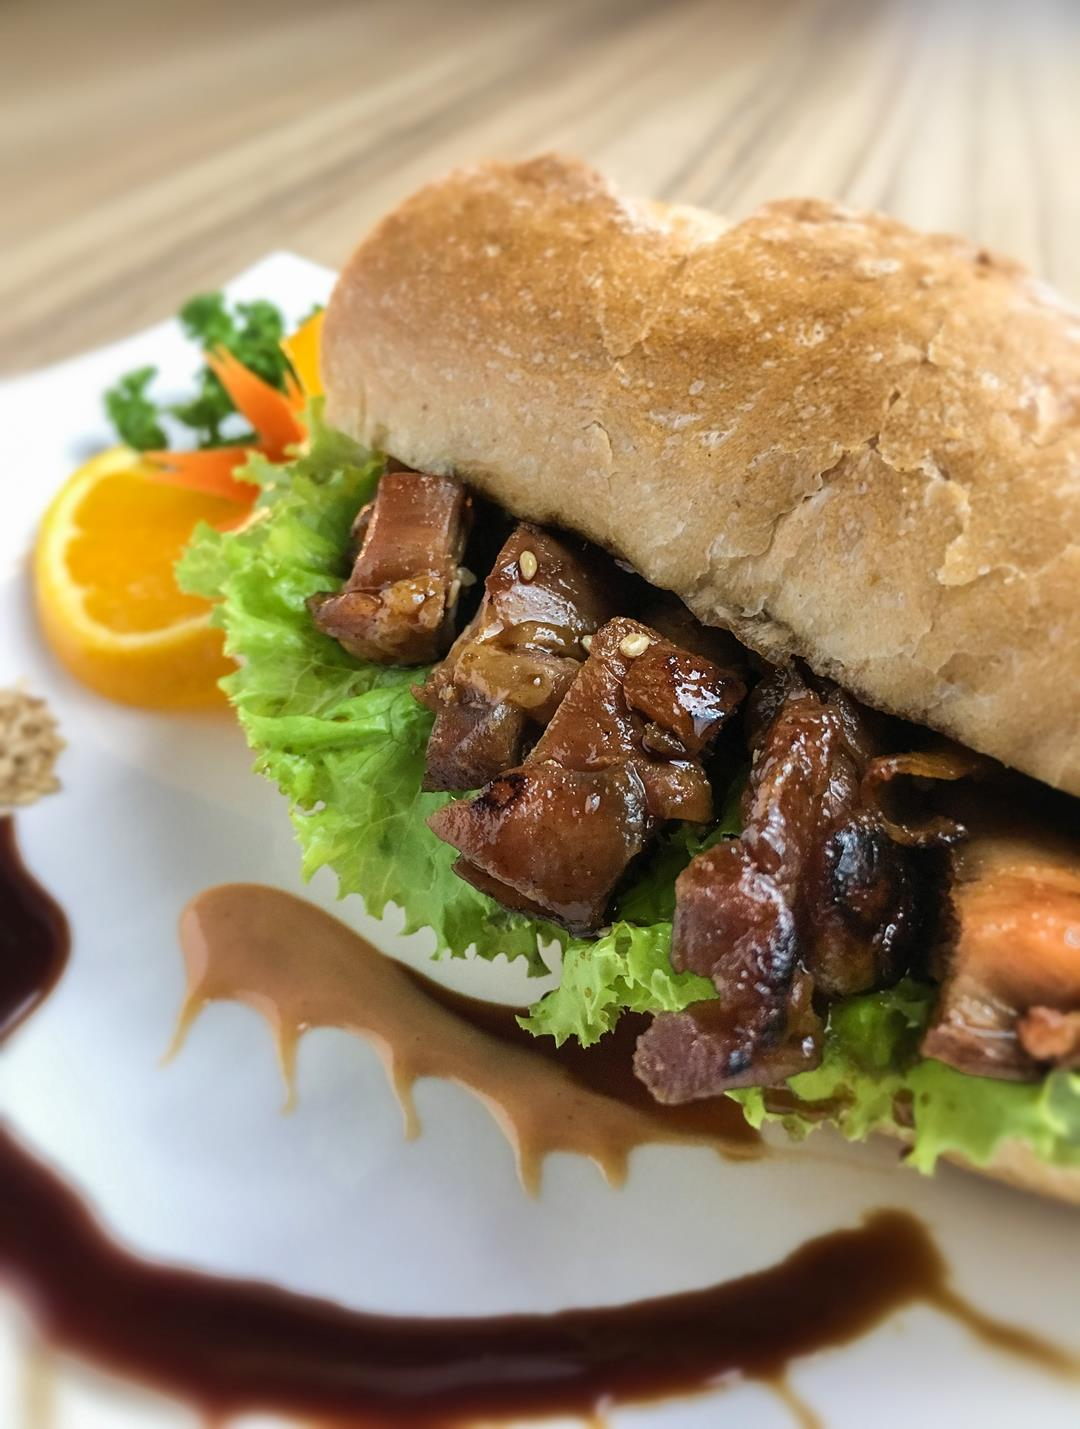 Chicken teriyaki is given a new twist as a sandwich meal.